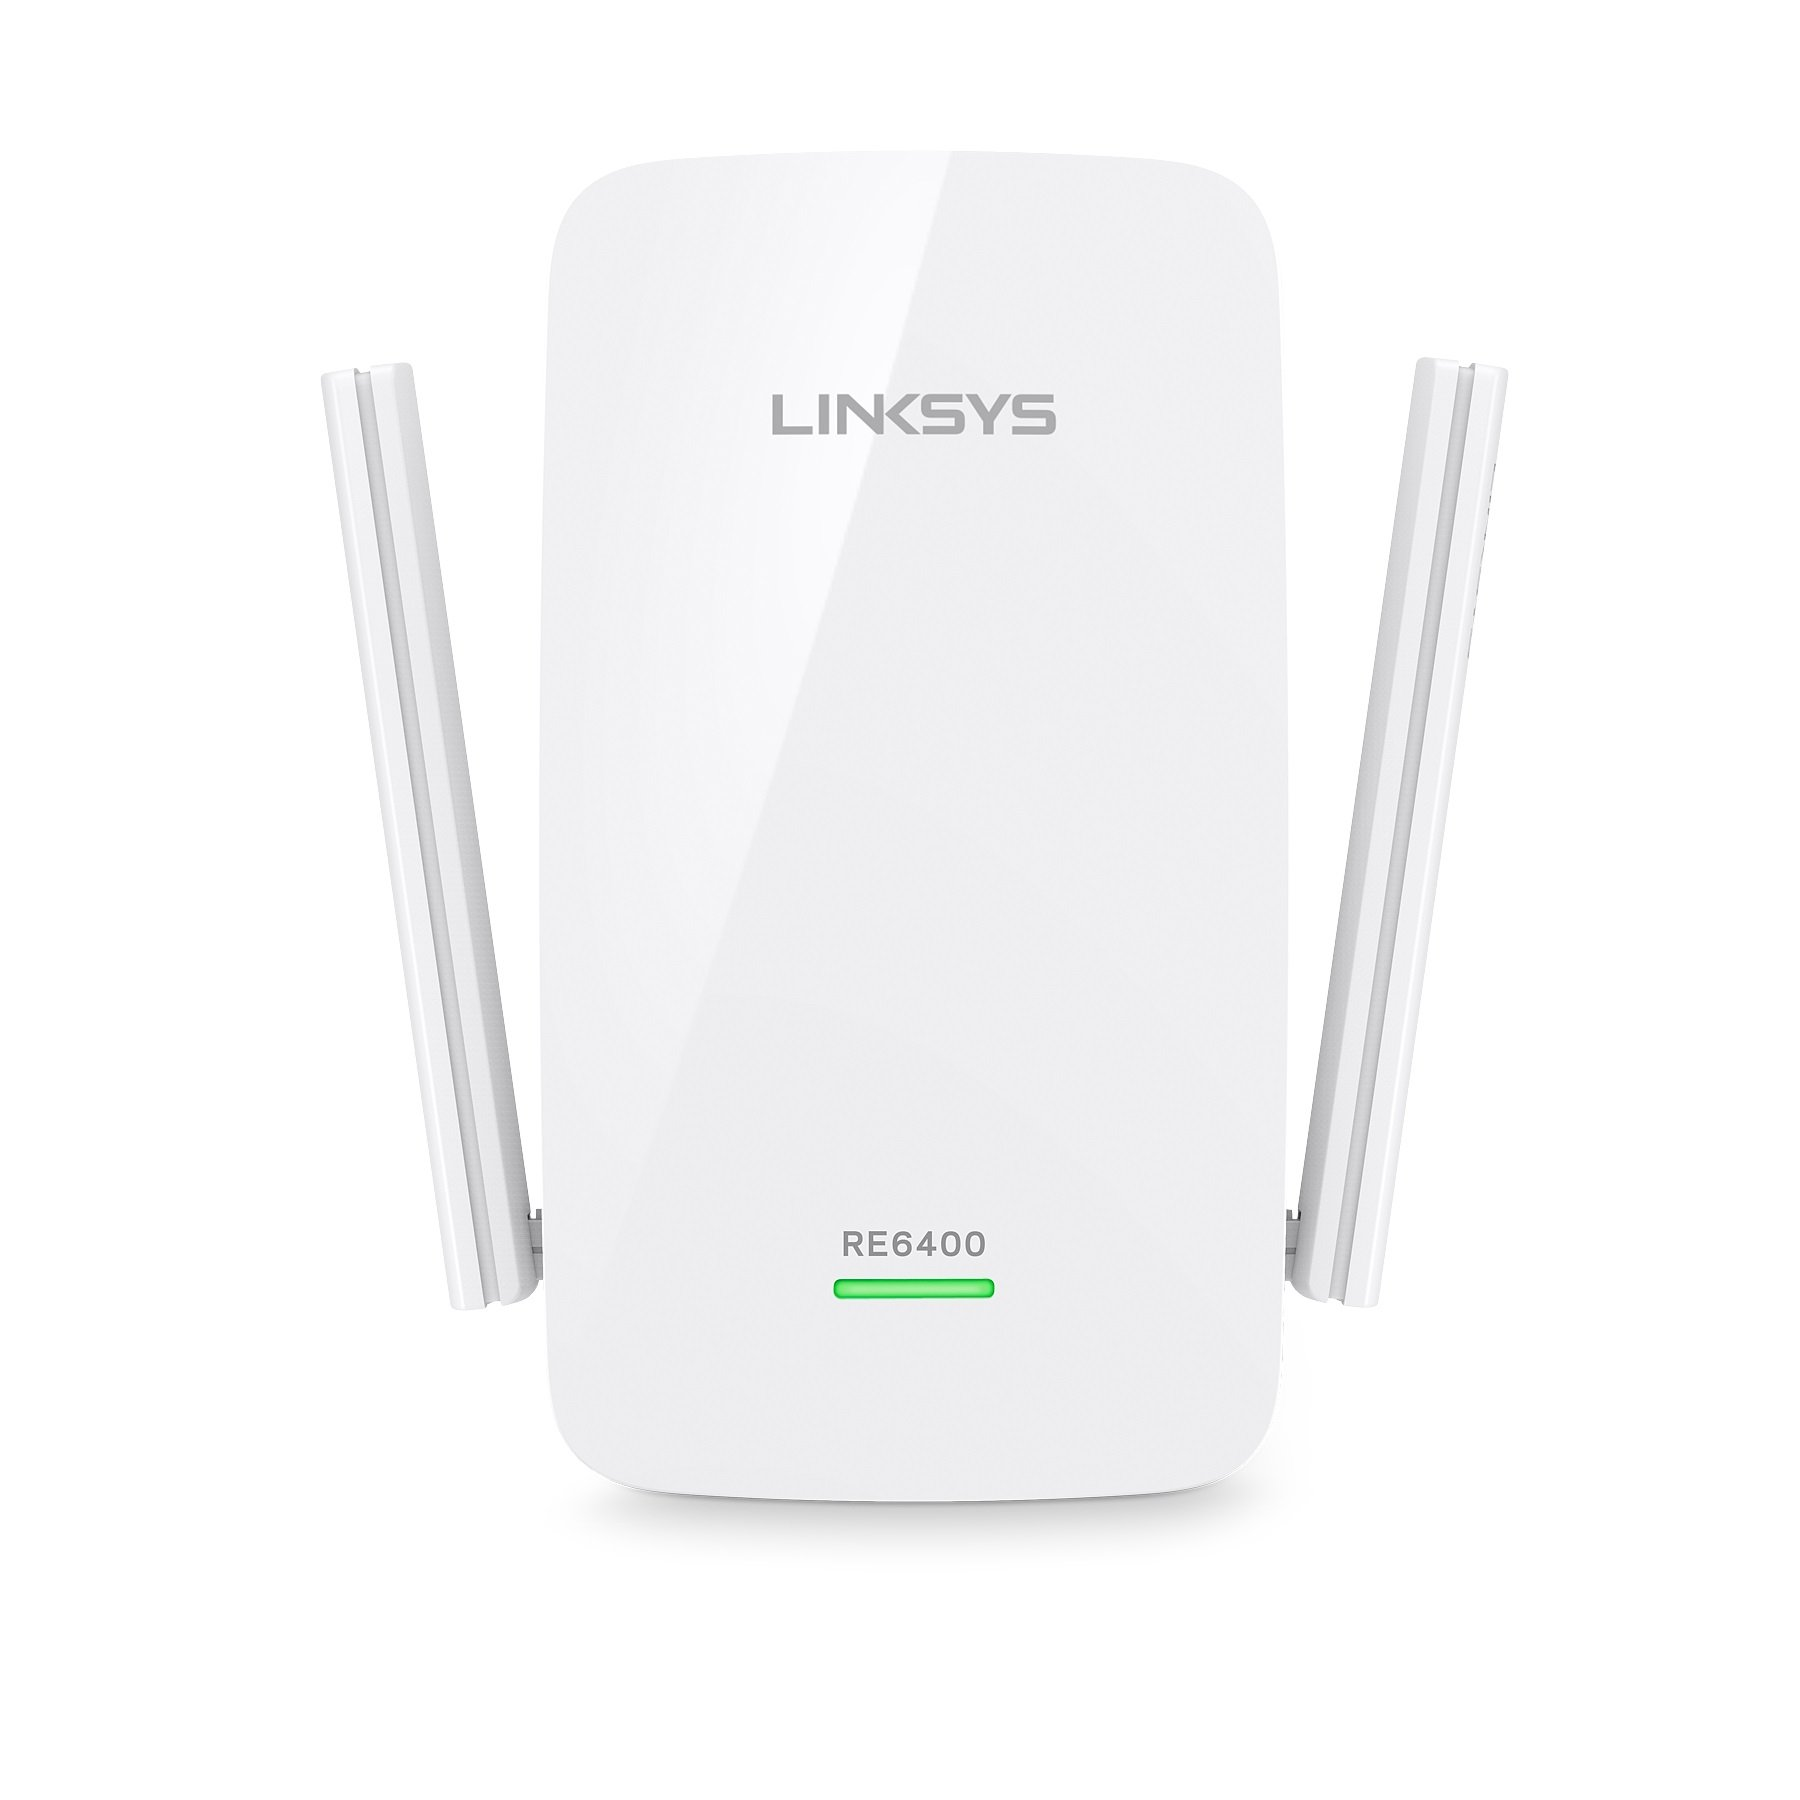 Linksys AC1200 Boost EX Dual-Band Wi-Fi Range Extender (RE6400) by Cisco